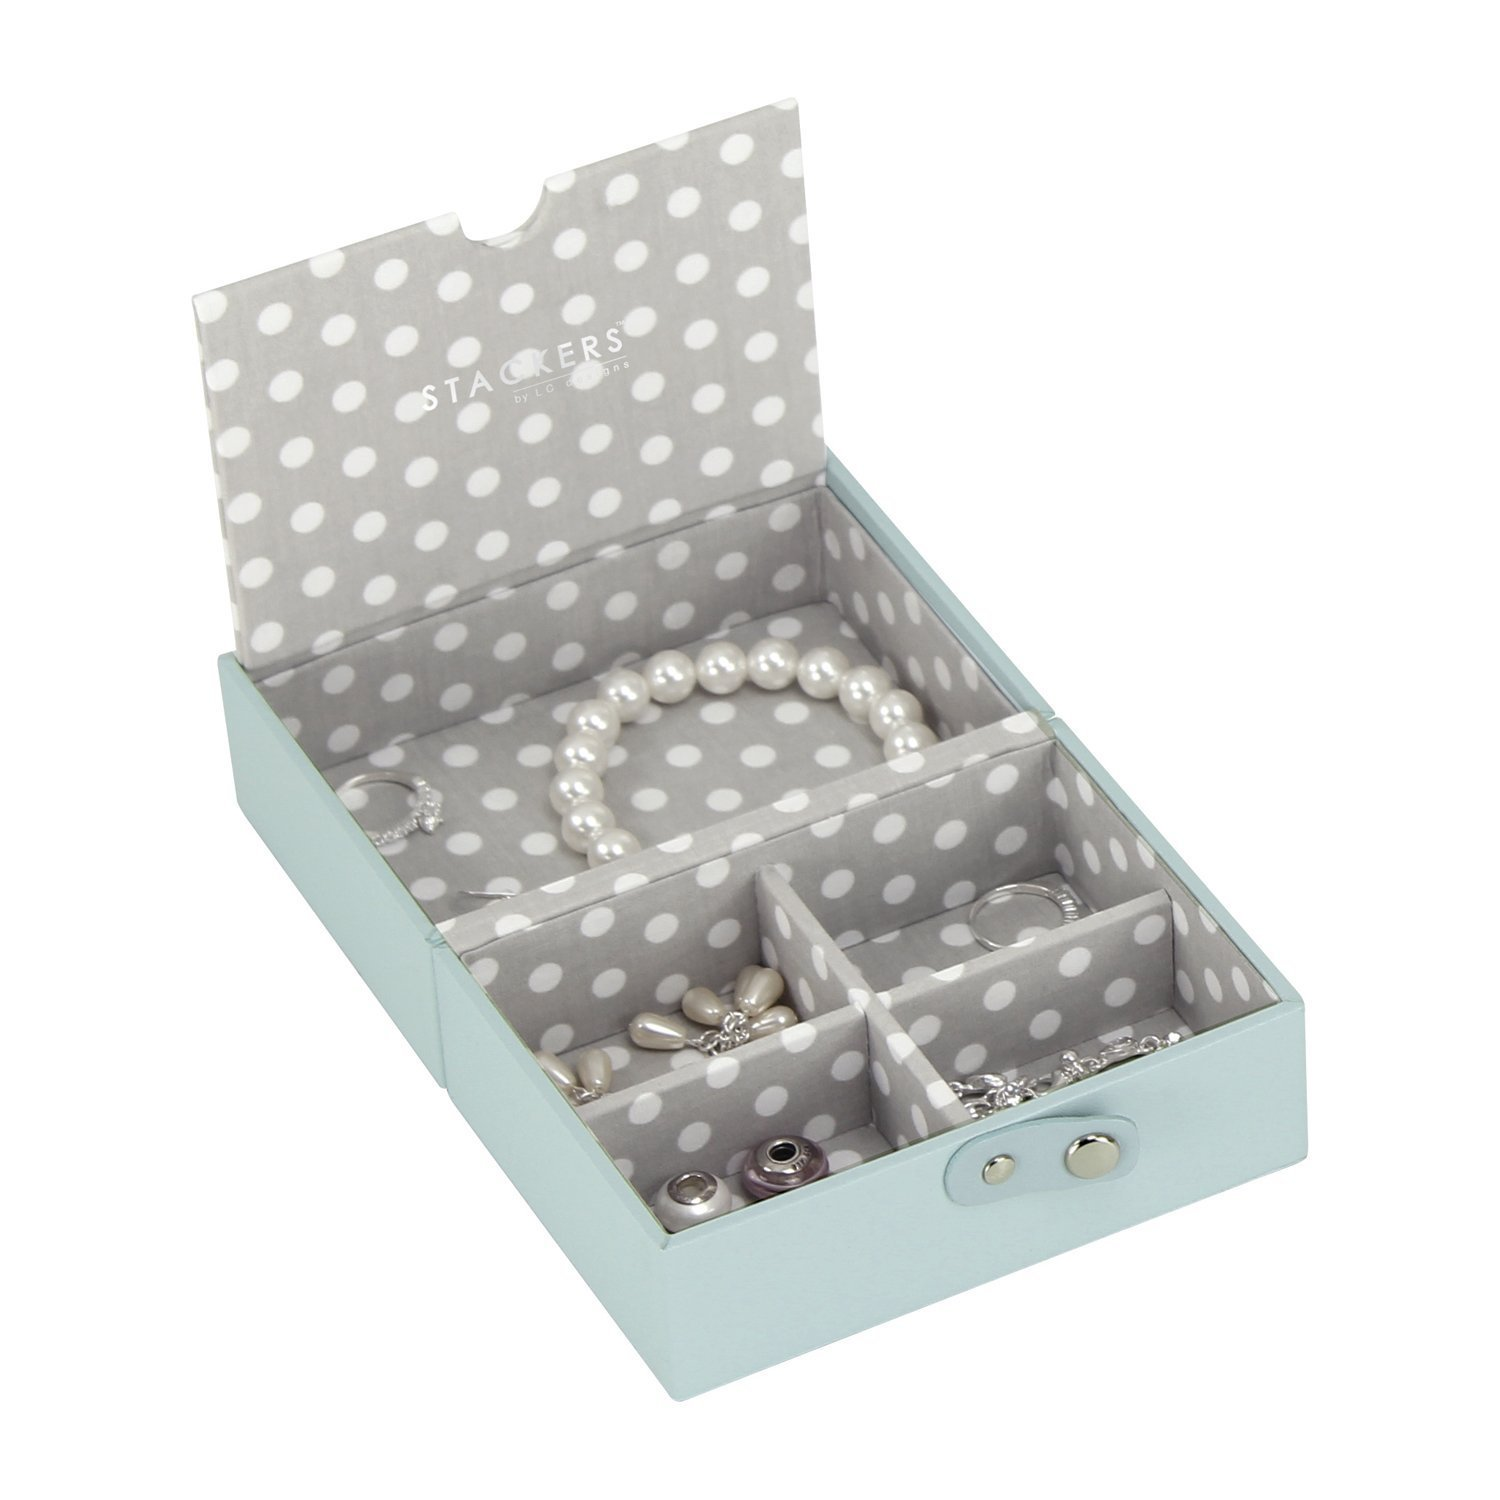 STACKERS ACCESSORY – Duck Egg Blue Travel Box STACKER ACCESSORY with Grey PolkaDot Lining Carters of London 73134